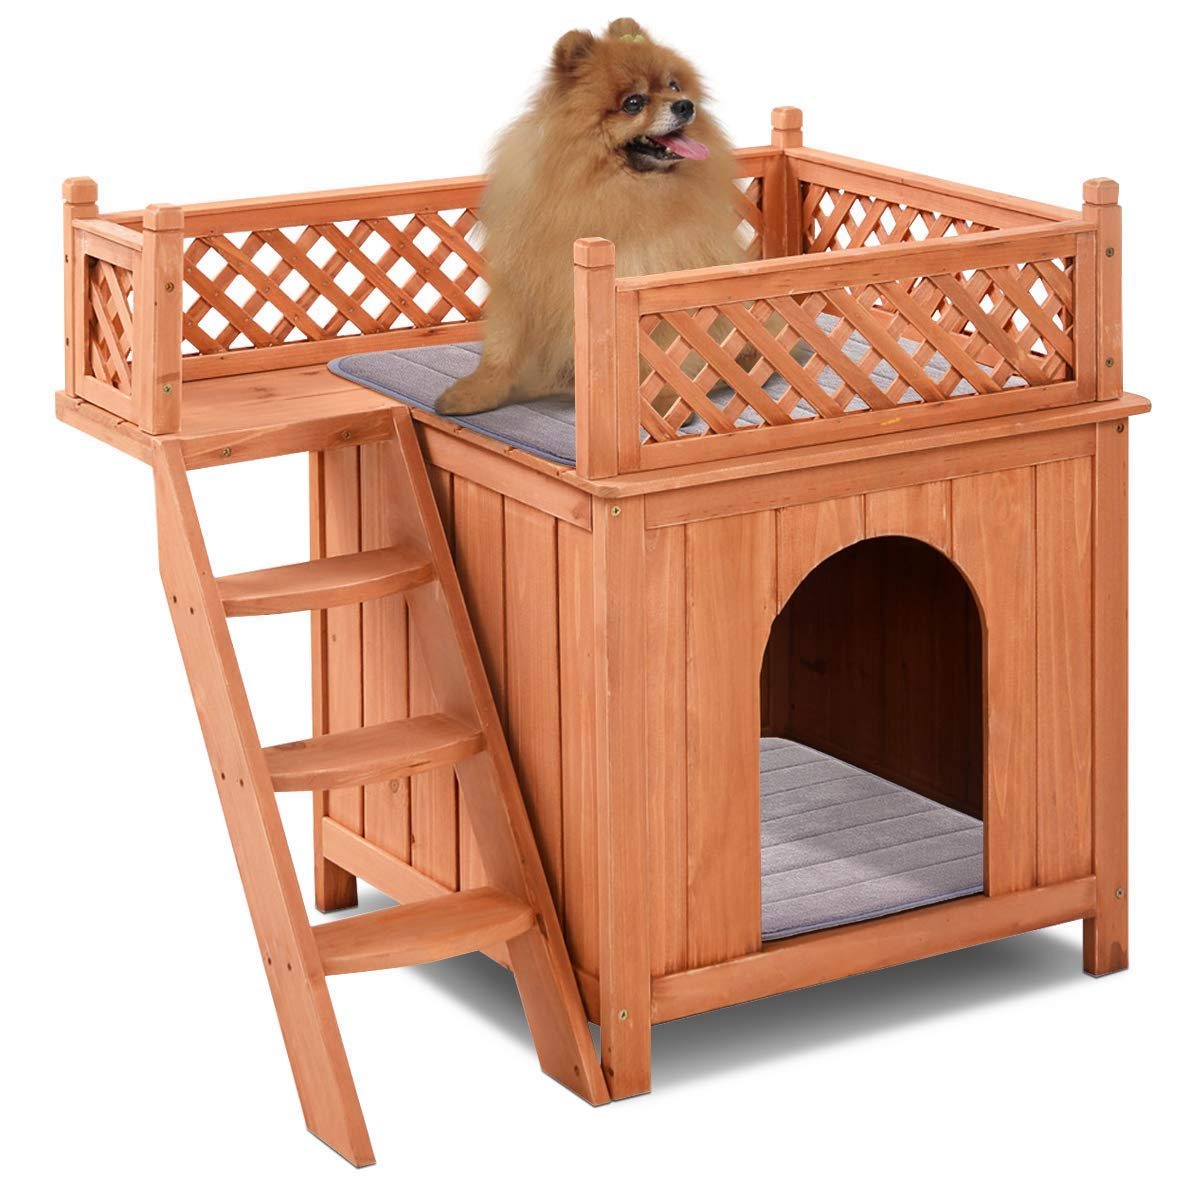 Giantex Pet Dog House, Wooden Dog Room Shelter with Stairs, Raised Roof and Balcony Bed for Indoor and Outdoor Use, Wood Dog House by Giantex